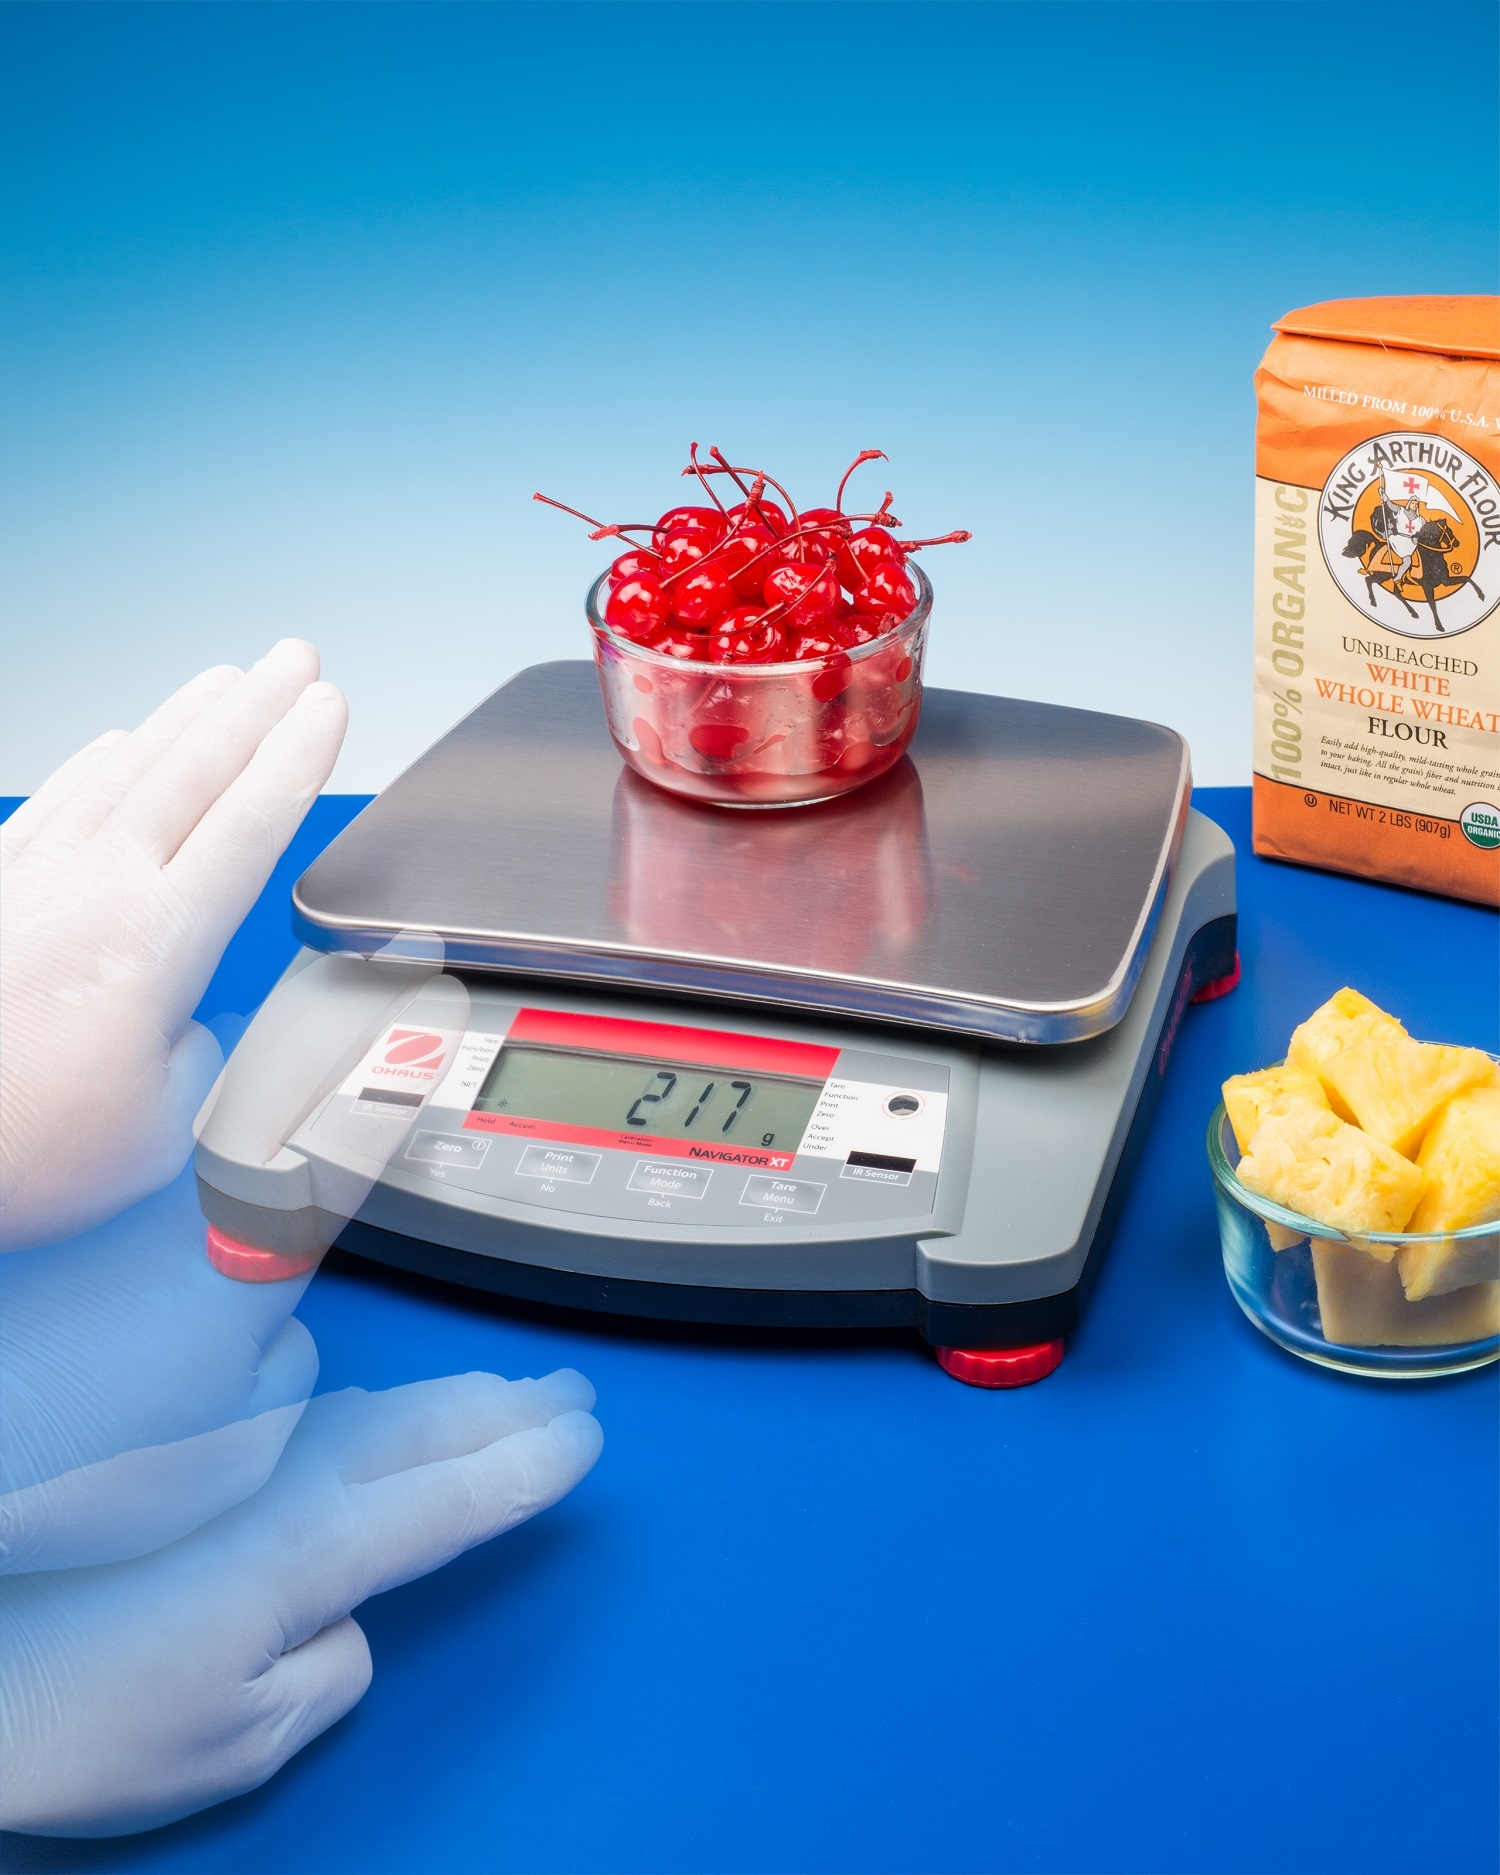 PORTABLE SCALE - TOUCH-FREE FOR FAST WEIGHING